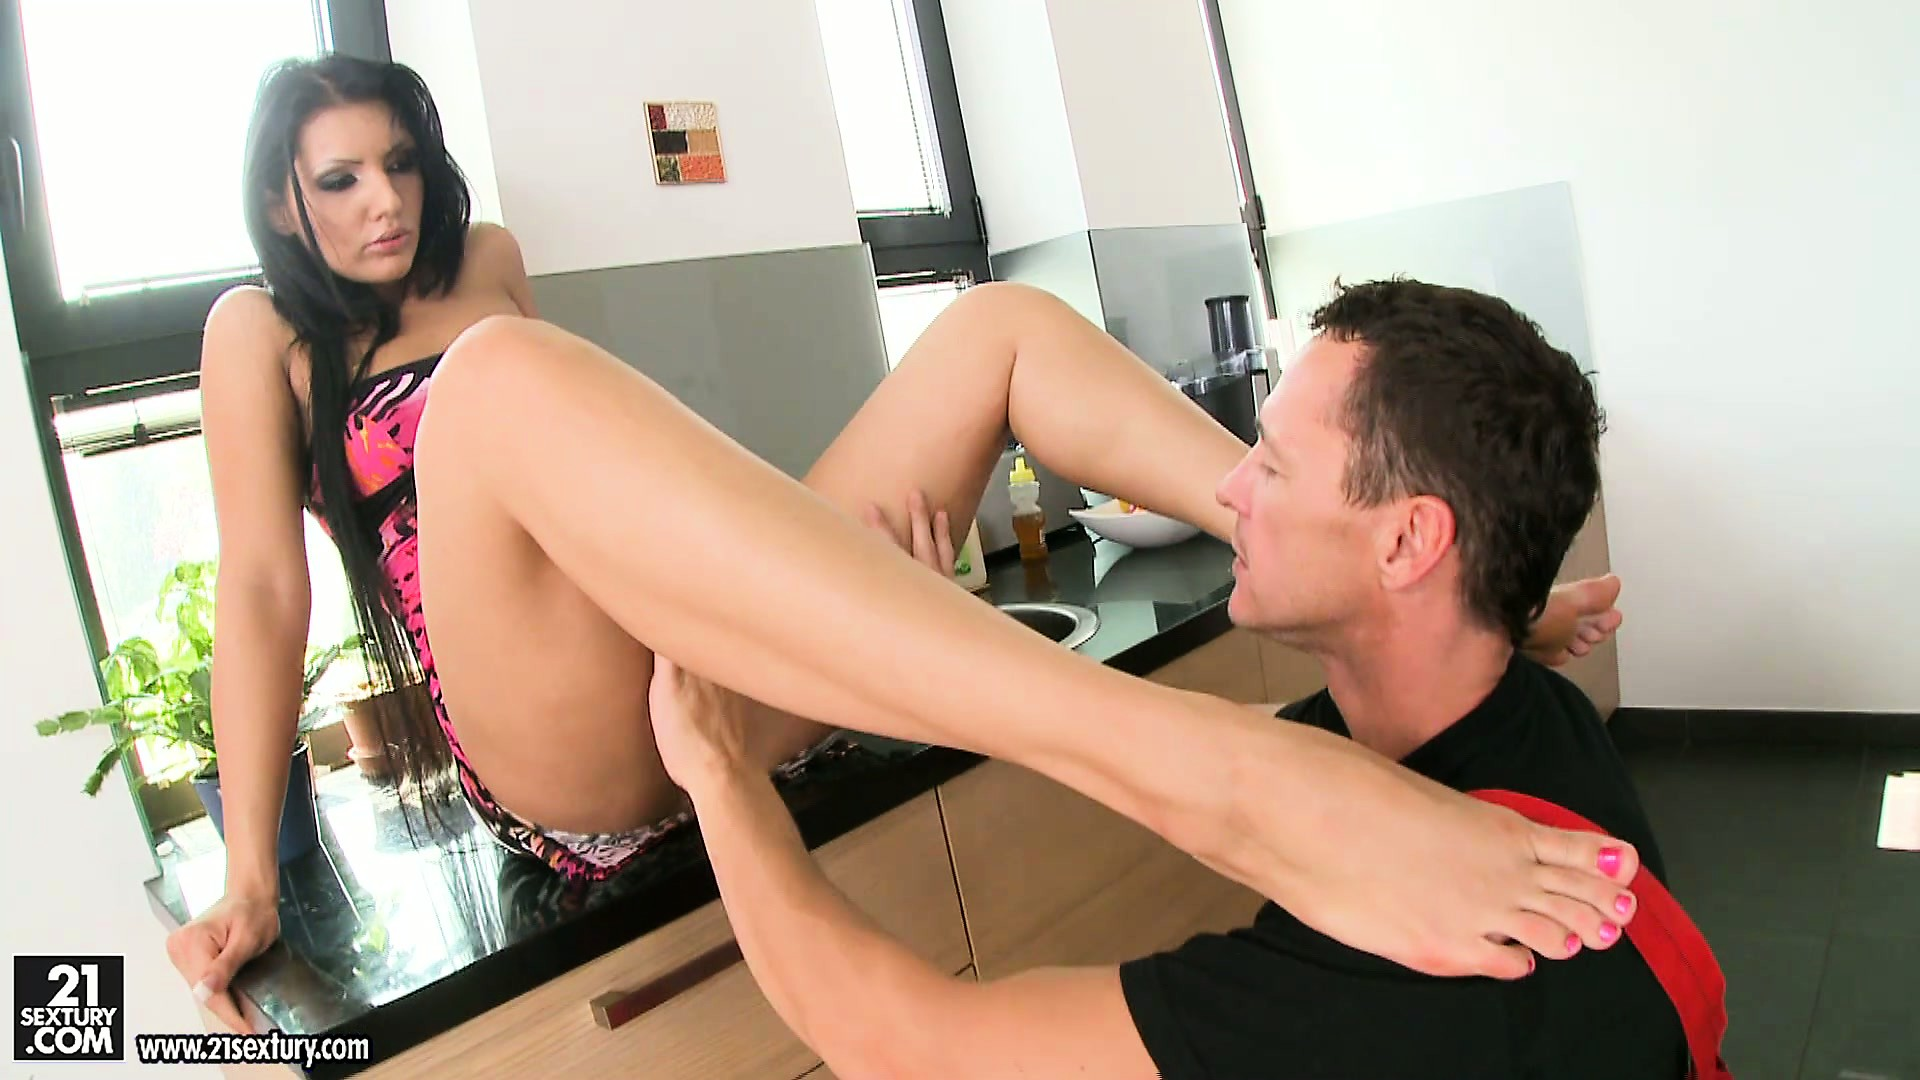 Sex Movie of She Gets An Itch And The Plumber Gets Some Pussy As He Licks And Sucks Her Feet